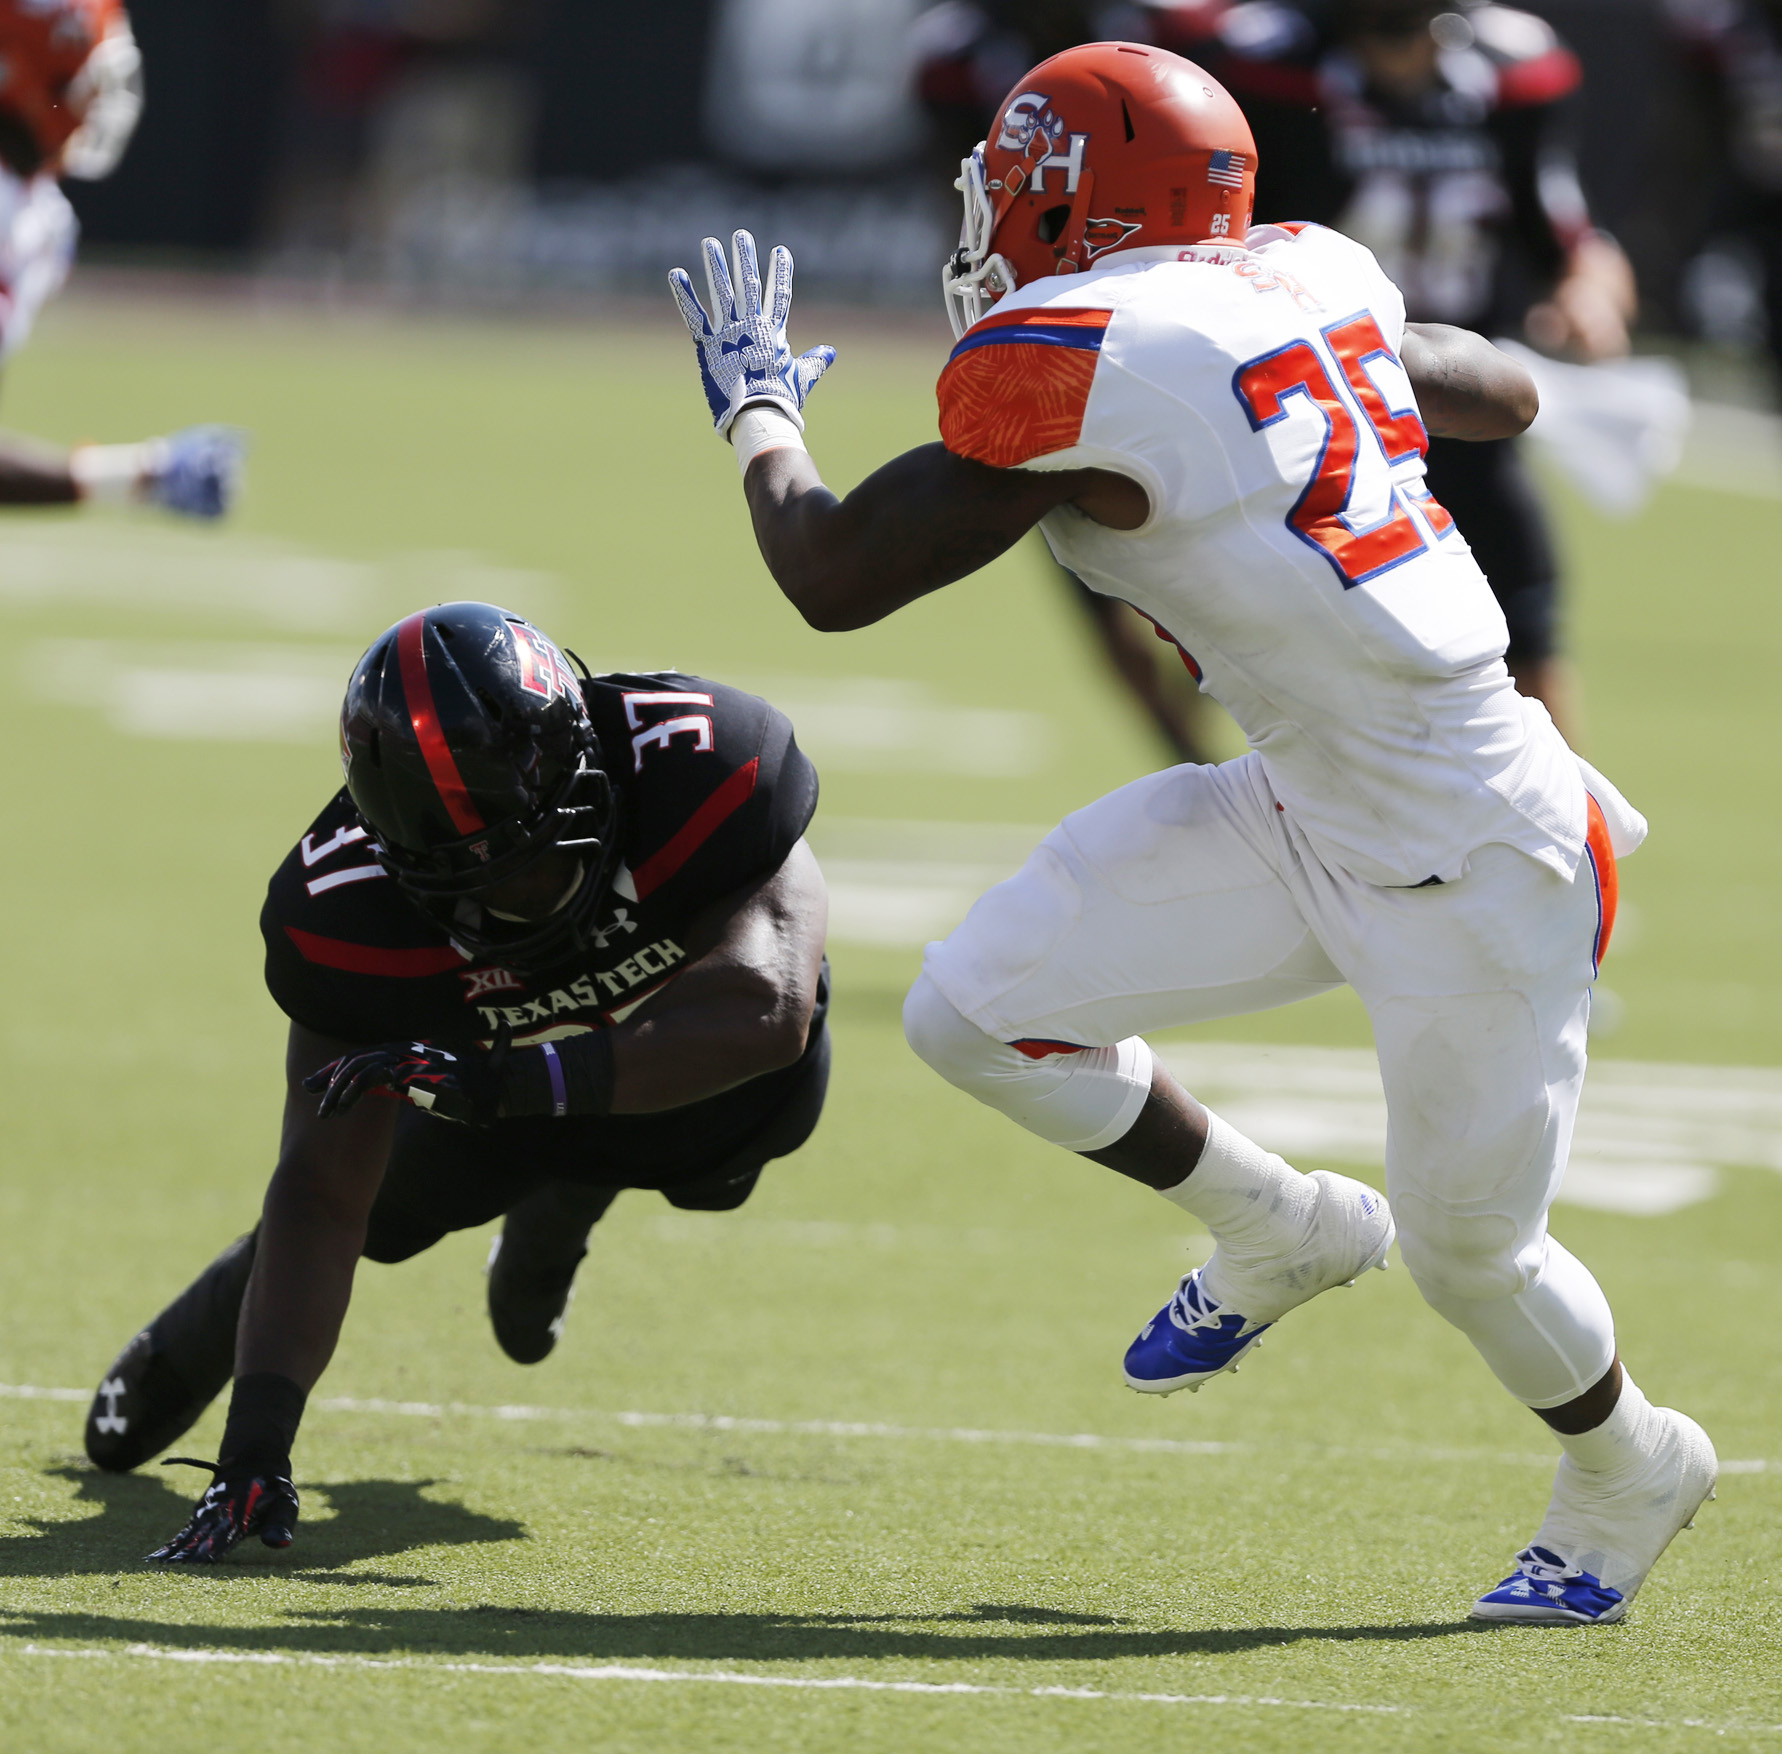 Sam Houston State's Gerald Thomas (25) carries the ball as Texas Tech's Bobby Esiaba defends during an NCAA college football game Saturday, Sept. 5, 2015, in Lubbock, Texas. (Mark Rogers/Lubbock Avalanche-Journal via AP) ALL LOCAL TELEVISION OUT; MANDATOR